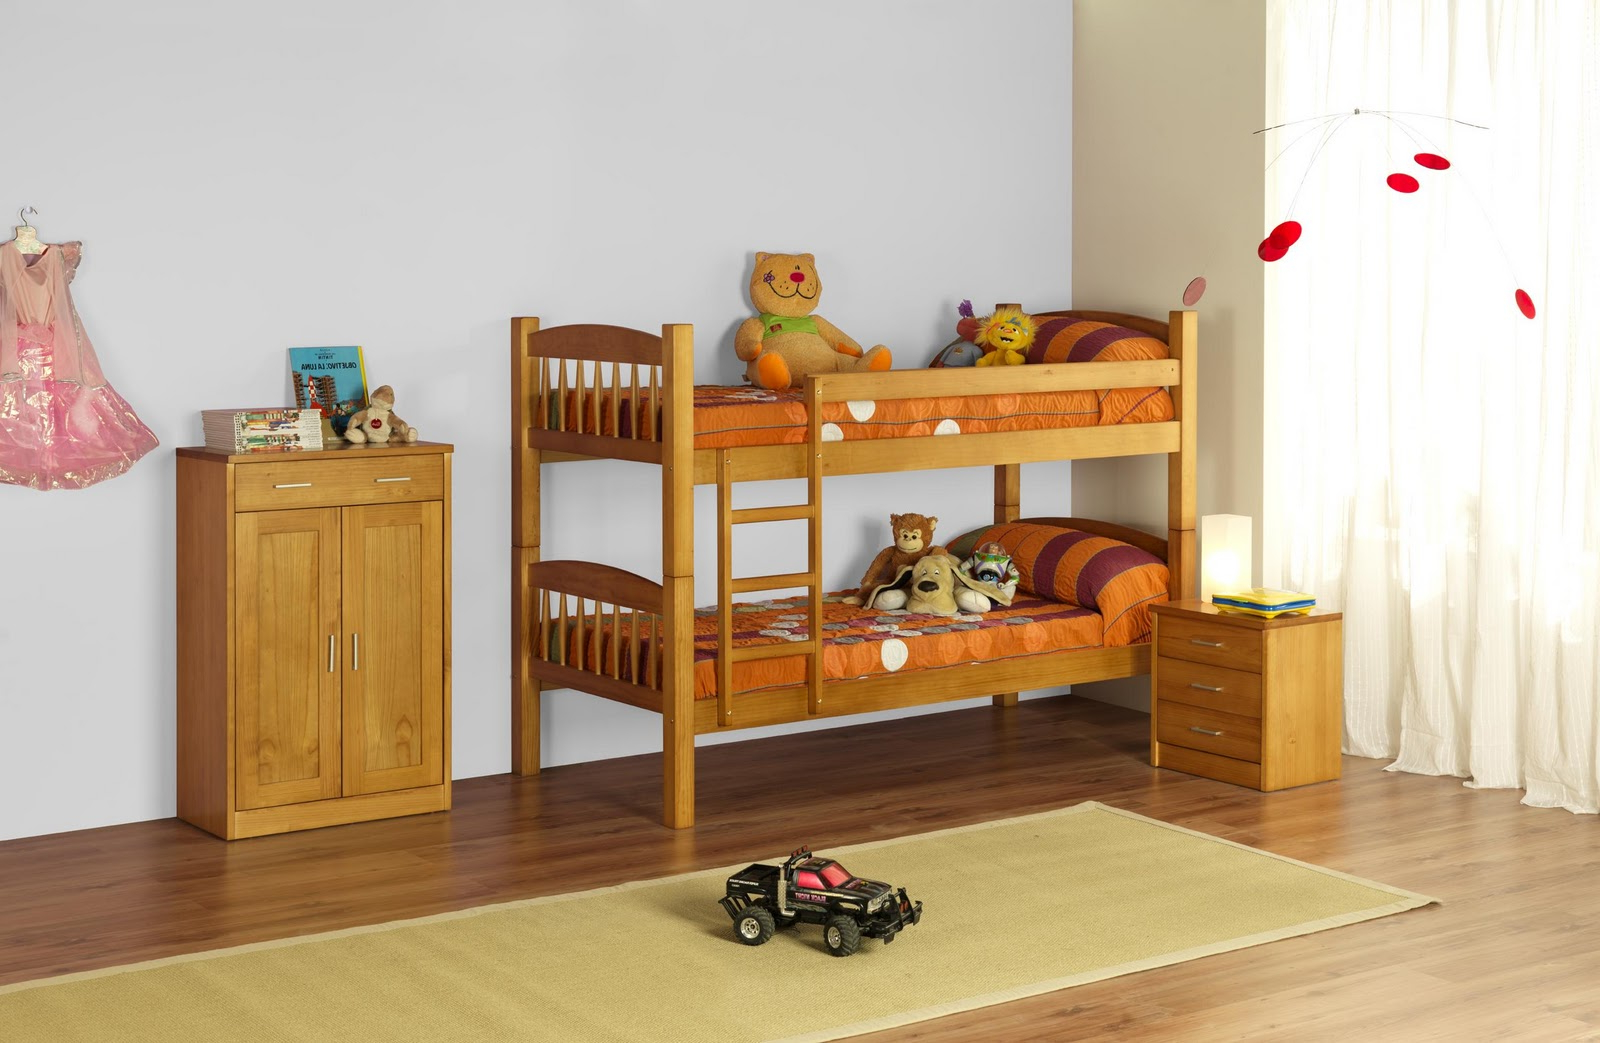 Muebles toscapino Drdp Muebles toscapino Juveniles